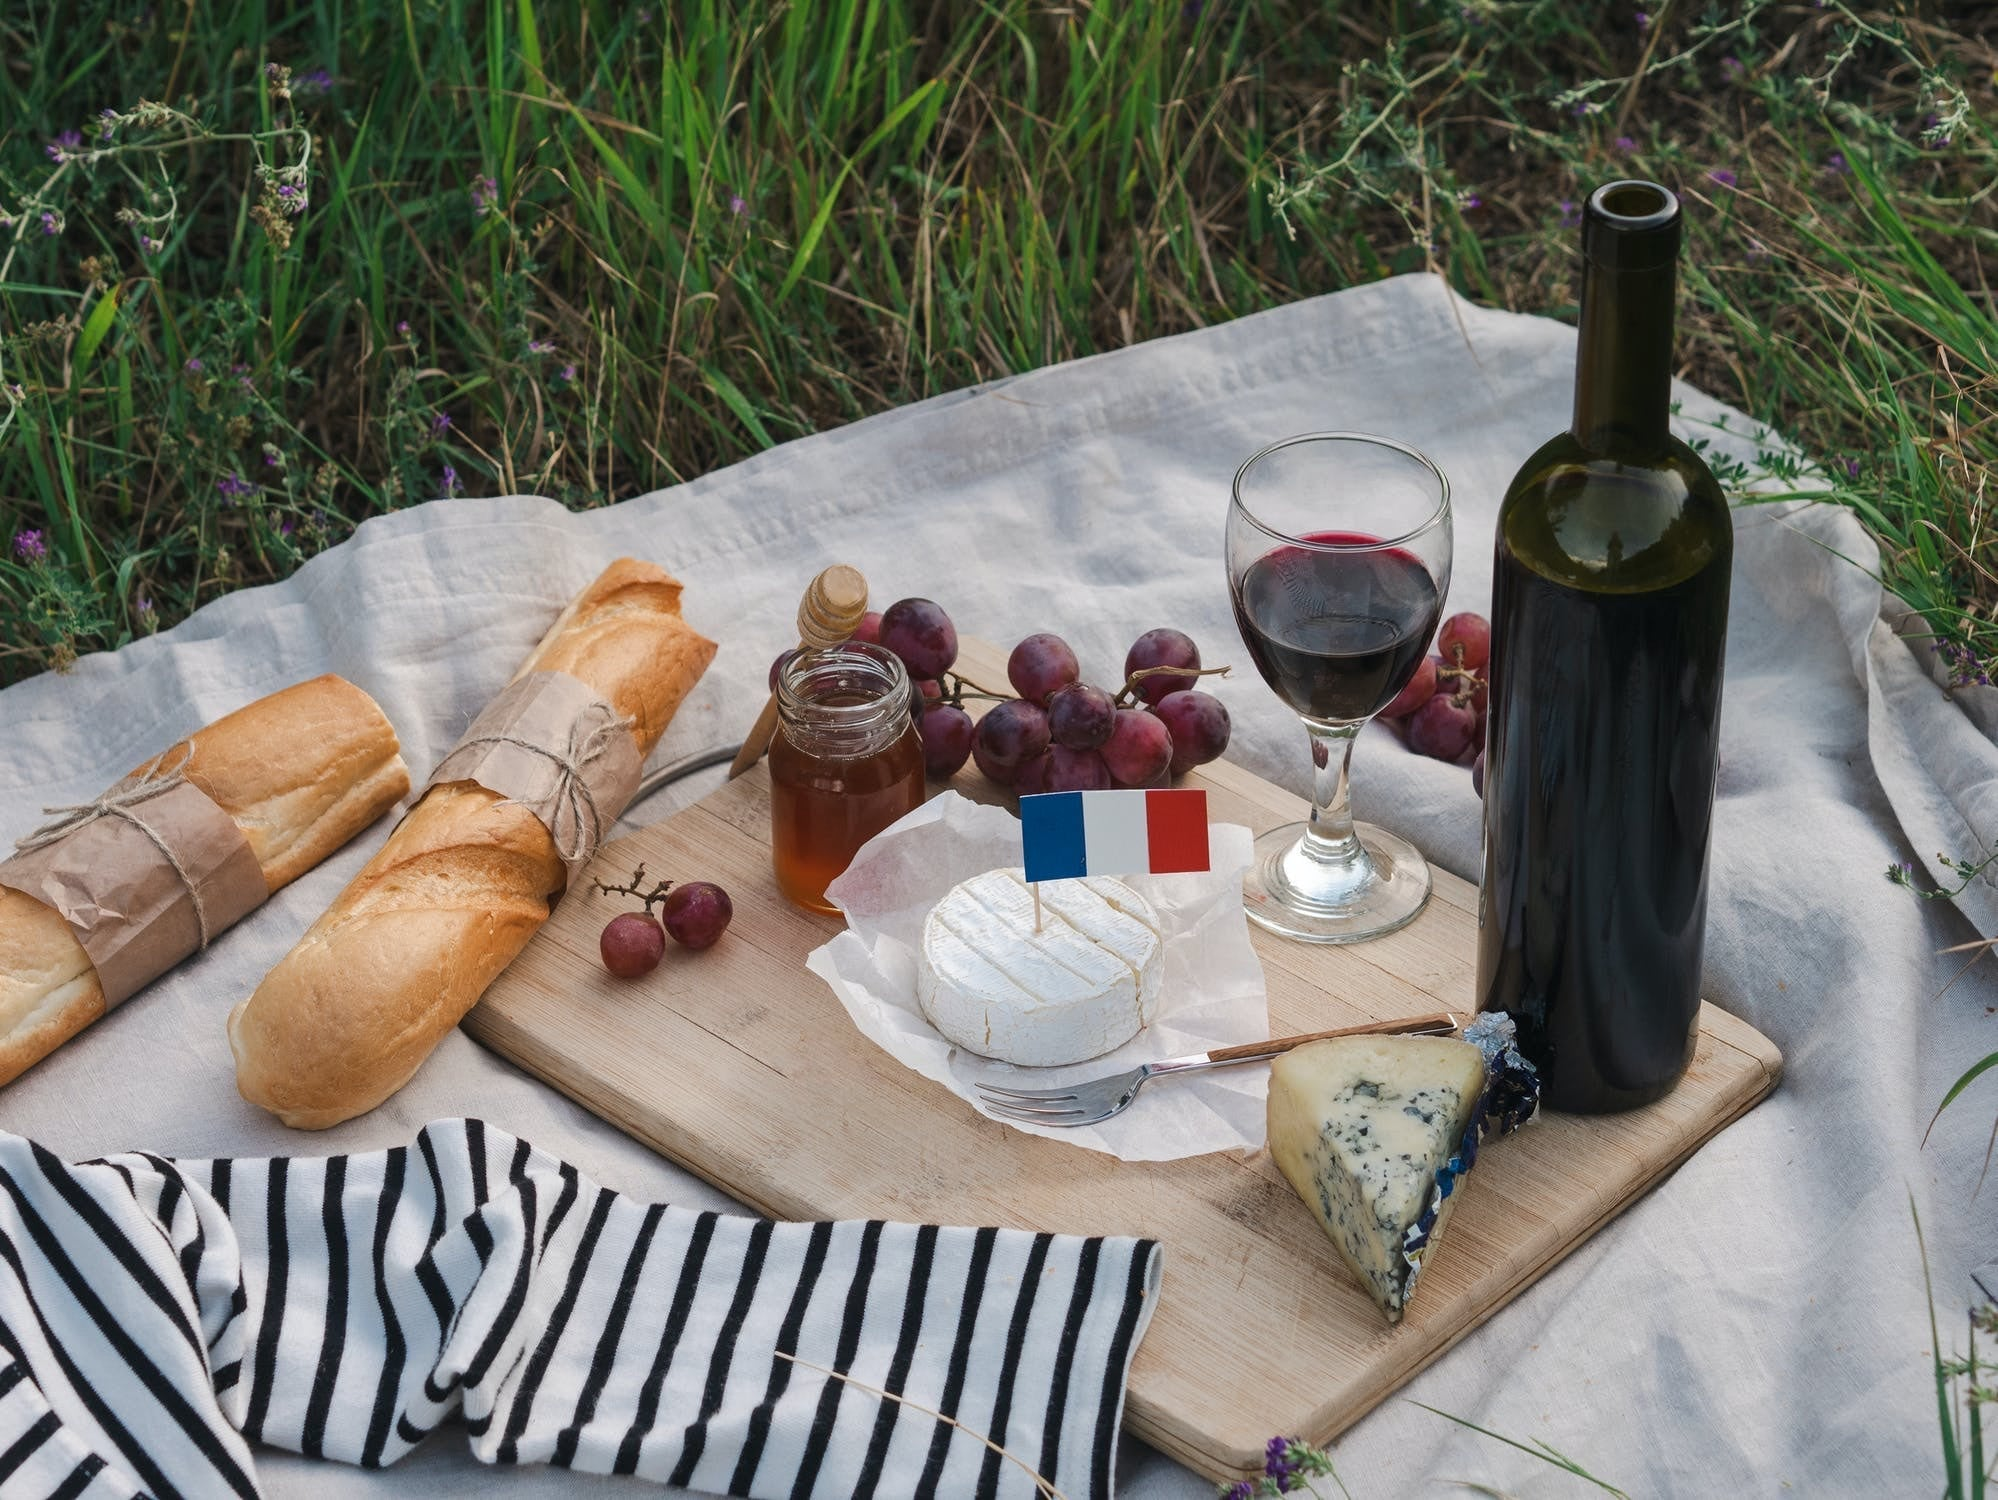 French picnic with wine, cheese, and fresh bread.